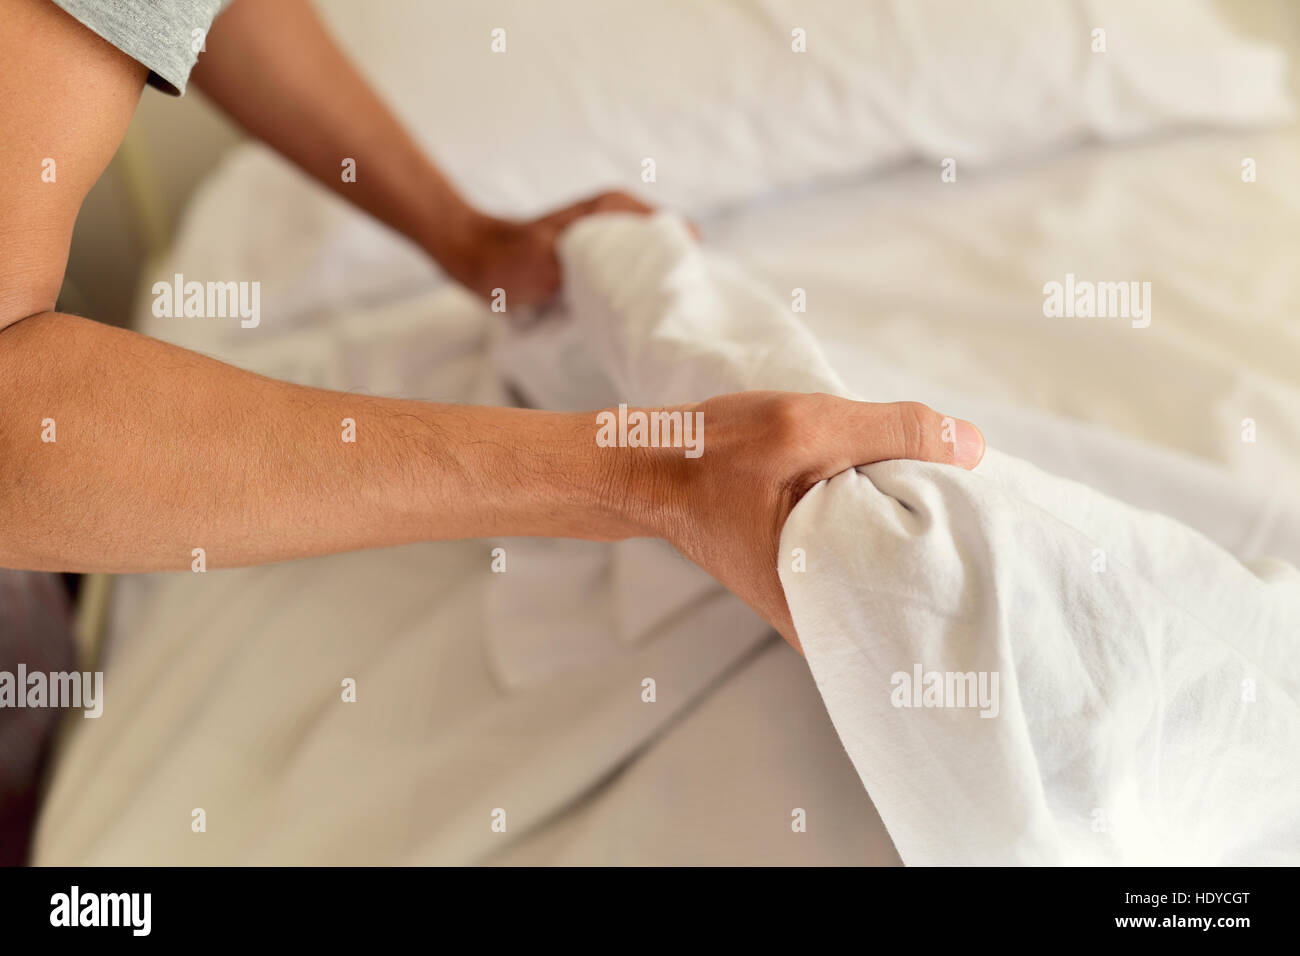 closeup of a young man extending the bedsheet or the duvet on the mattress as he is making the bed - Stock Image